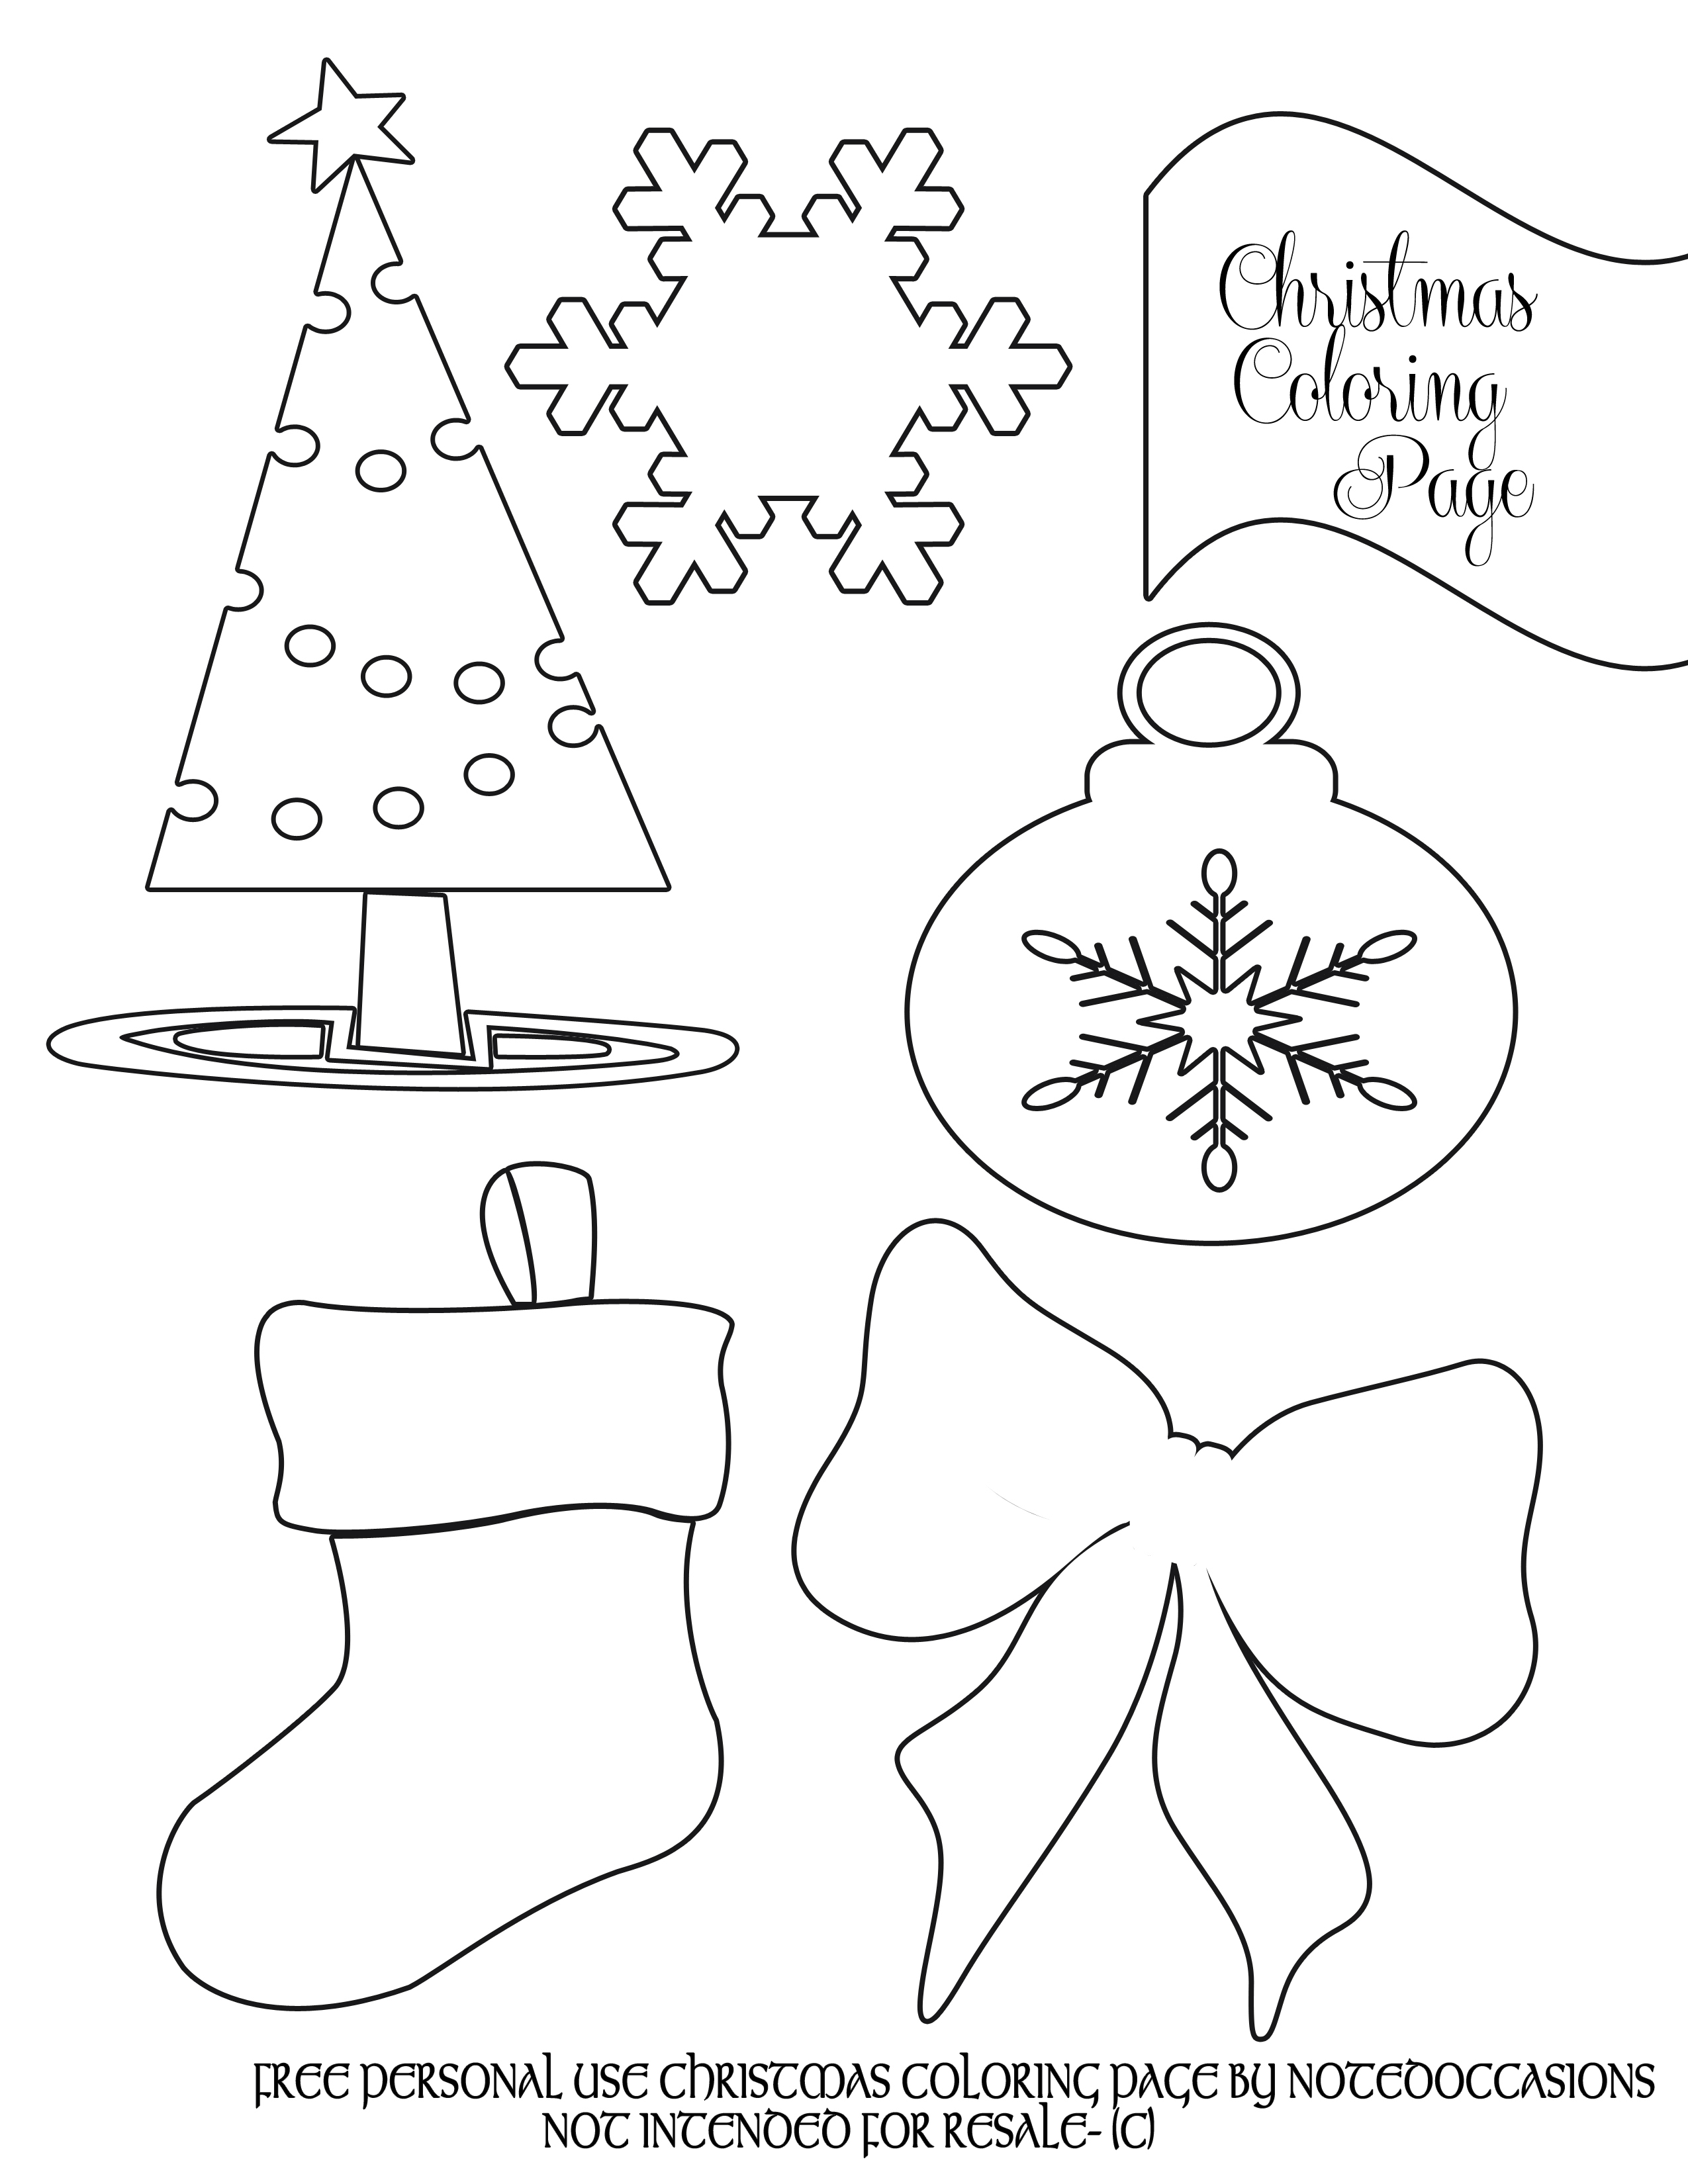 Party Simplicity Free Christmas Coloring Pages To Print - Party - Free Printable Christmas Coloring Pages For Kids